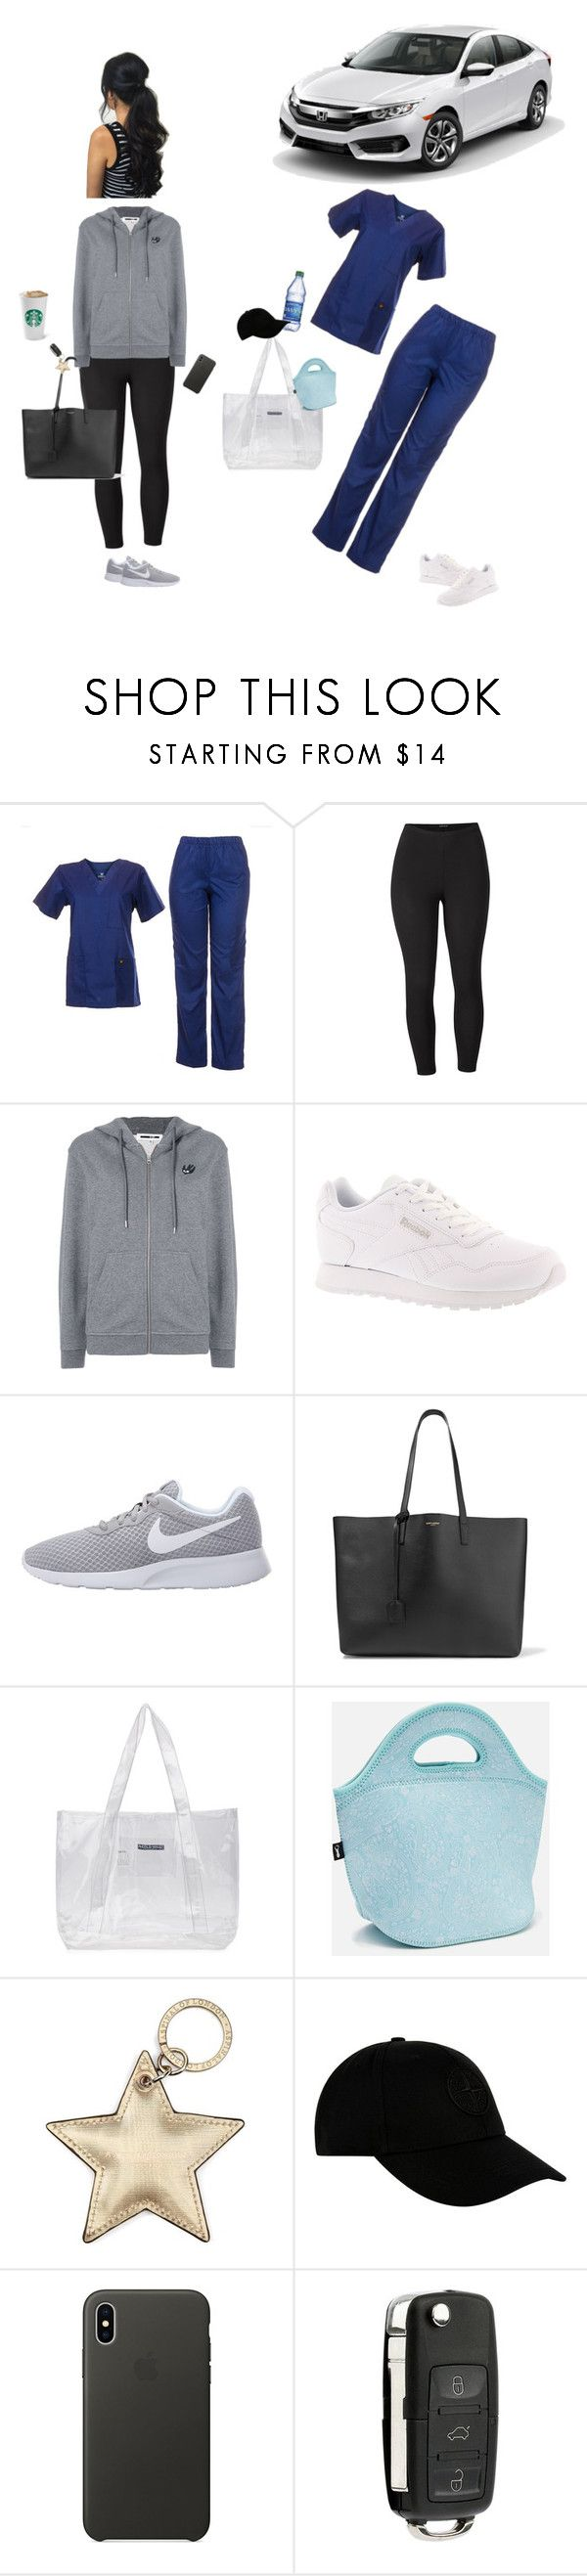 """""""Untitled #413"""" by nicole-dobosz ❤ liked on Polyvore featuring Venus, McQ by Alexander McQueen, Reebok, NIKE, Yves Saint Laurent, A-Cold-Wall*, Aspinal of London, STONE ISLAND, Apple and plus size clothing"""